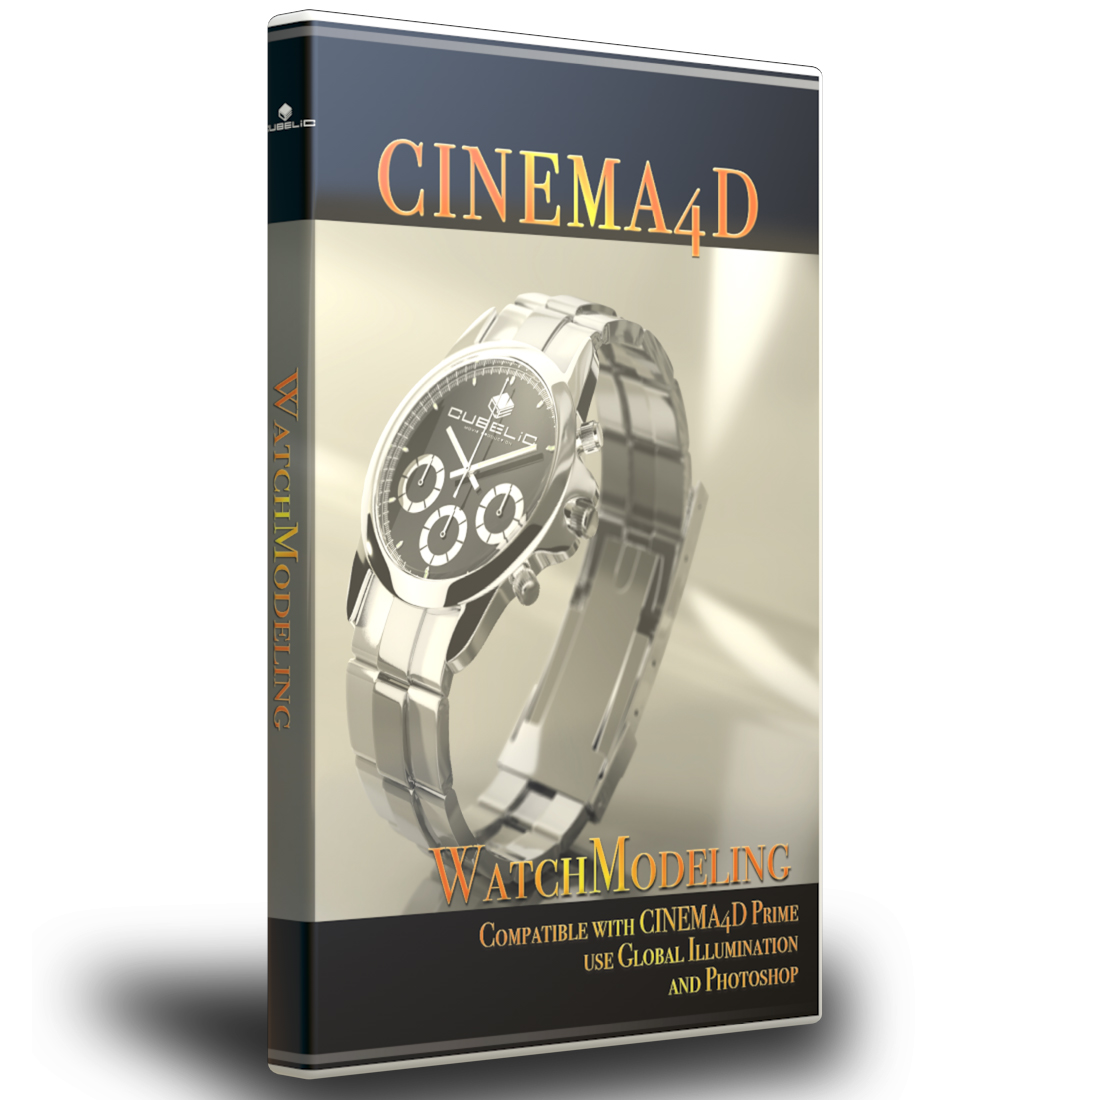 CINEMA4D講座【WatchModeling】